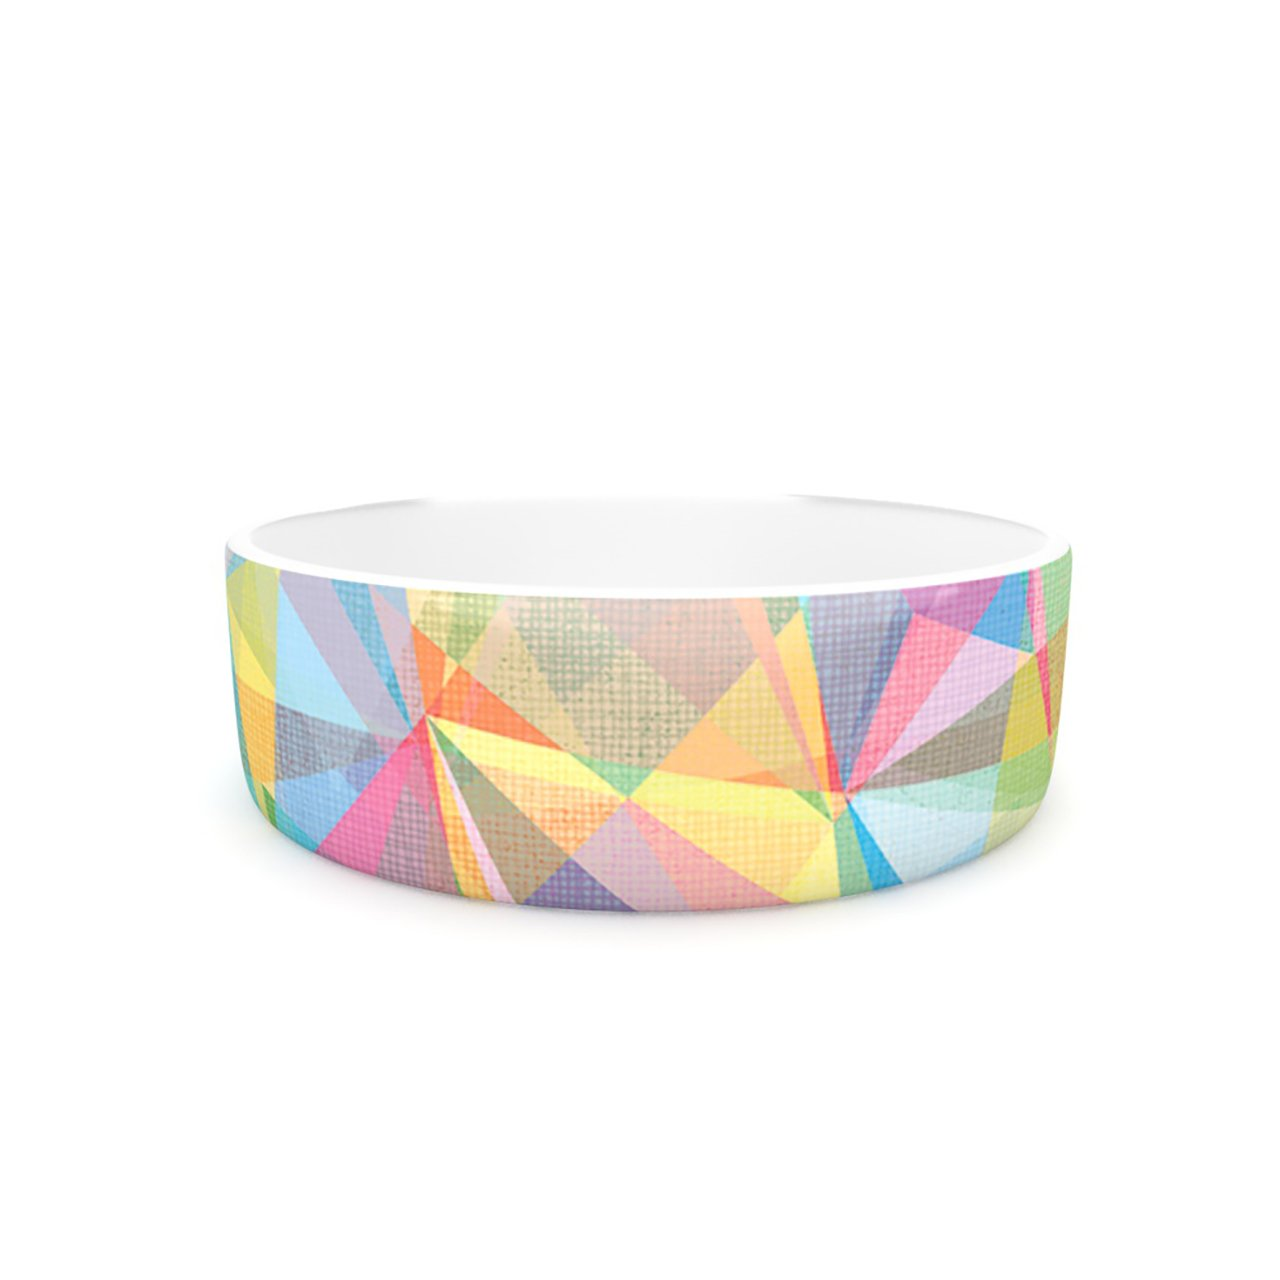 Kess InHouse Mareike Boehmer Graphic 32  Pet Bowl, 7-Inch, Rainbow Abstract